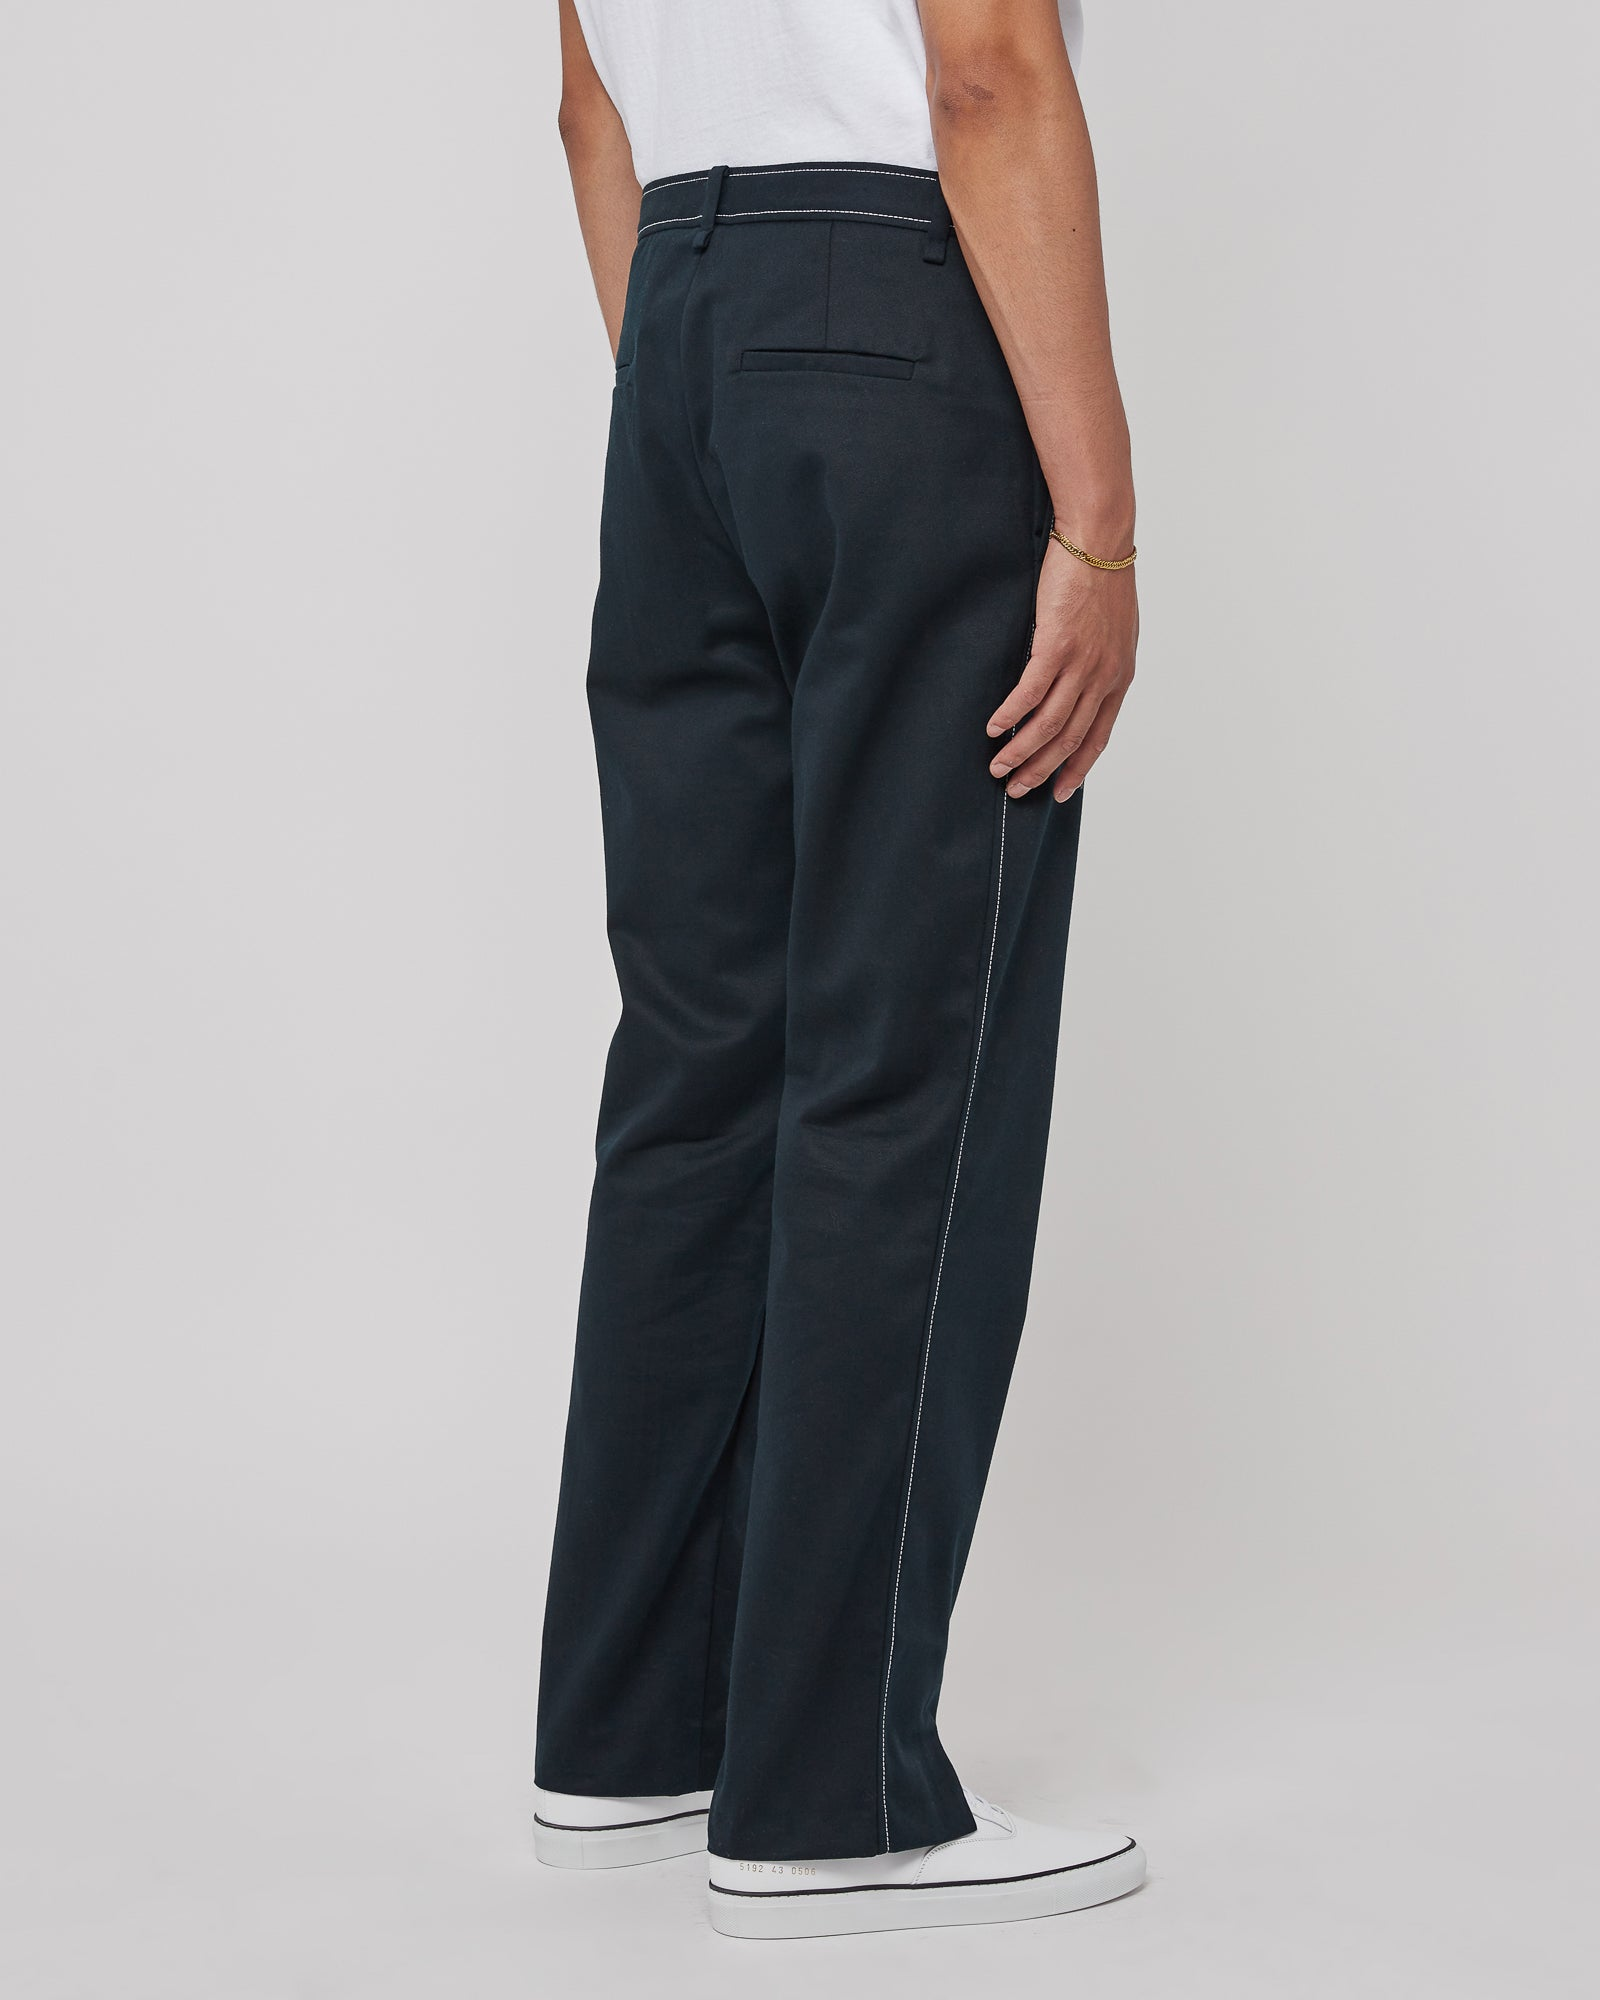 Full Service Sunday Sunday's Best Trouser in Black